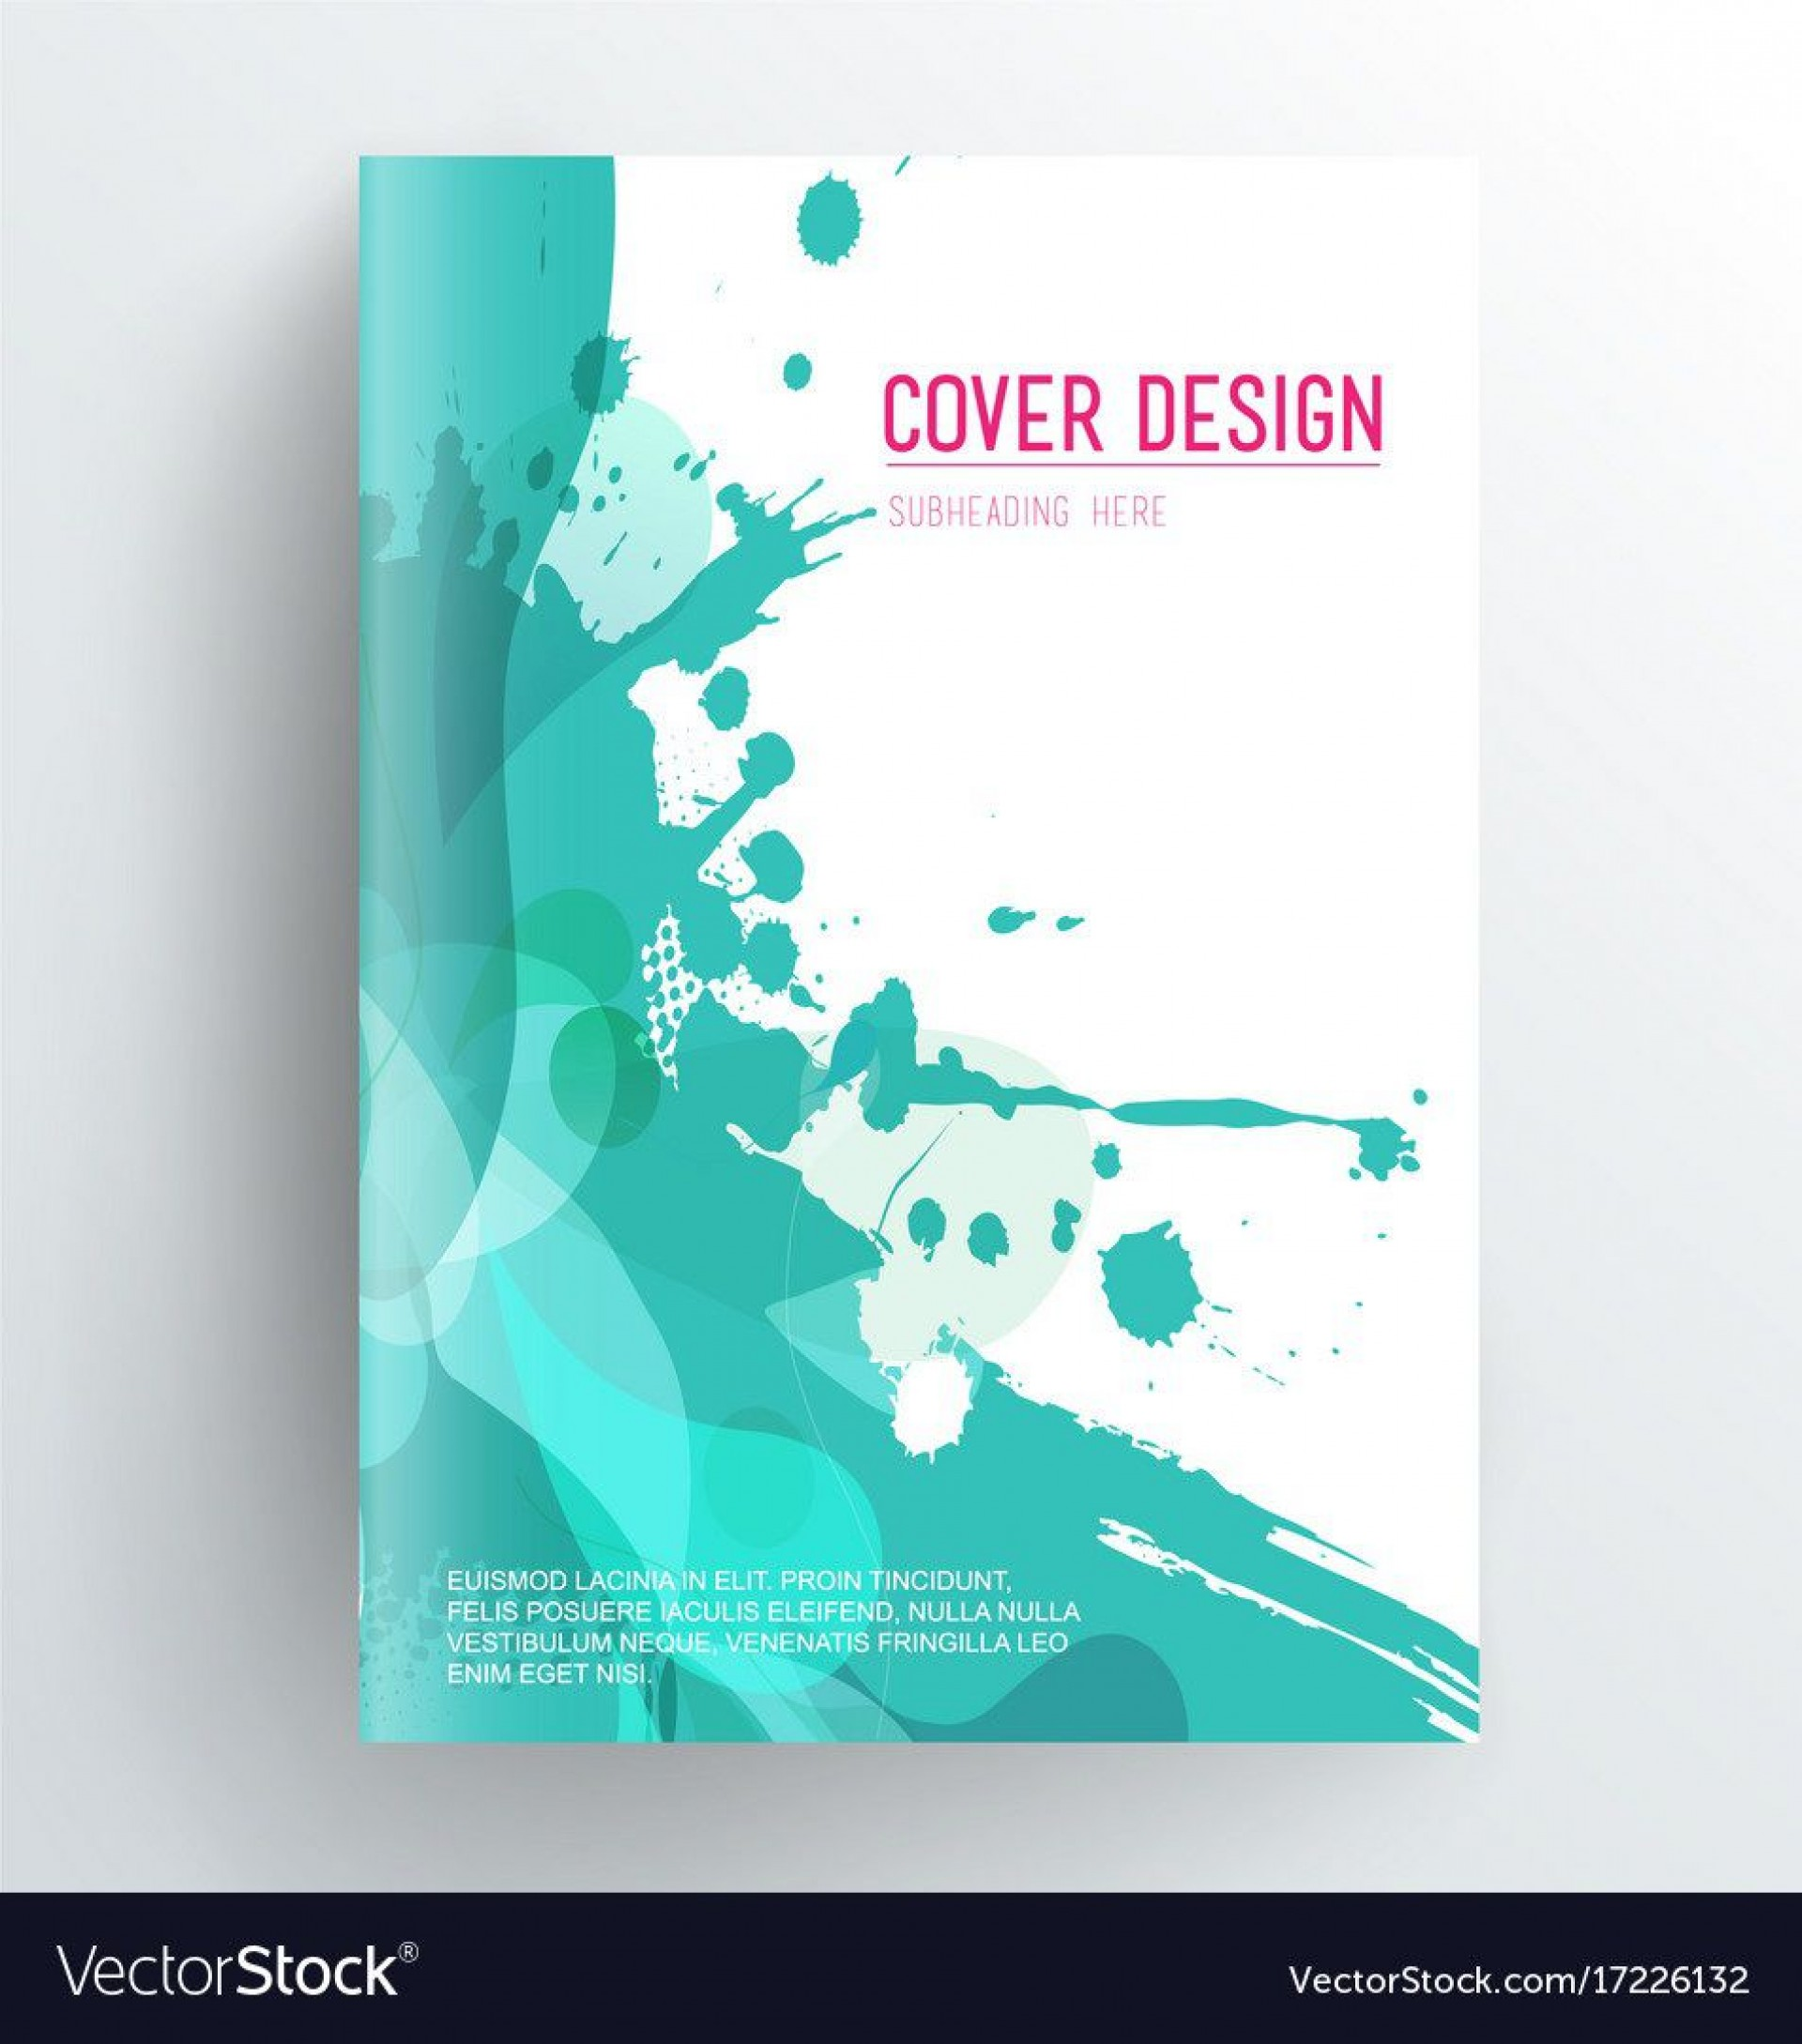 006 Surprising Book Front Page Design Template Free Download Sample  Cover Psd1920